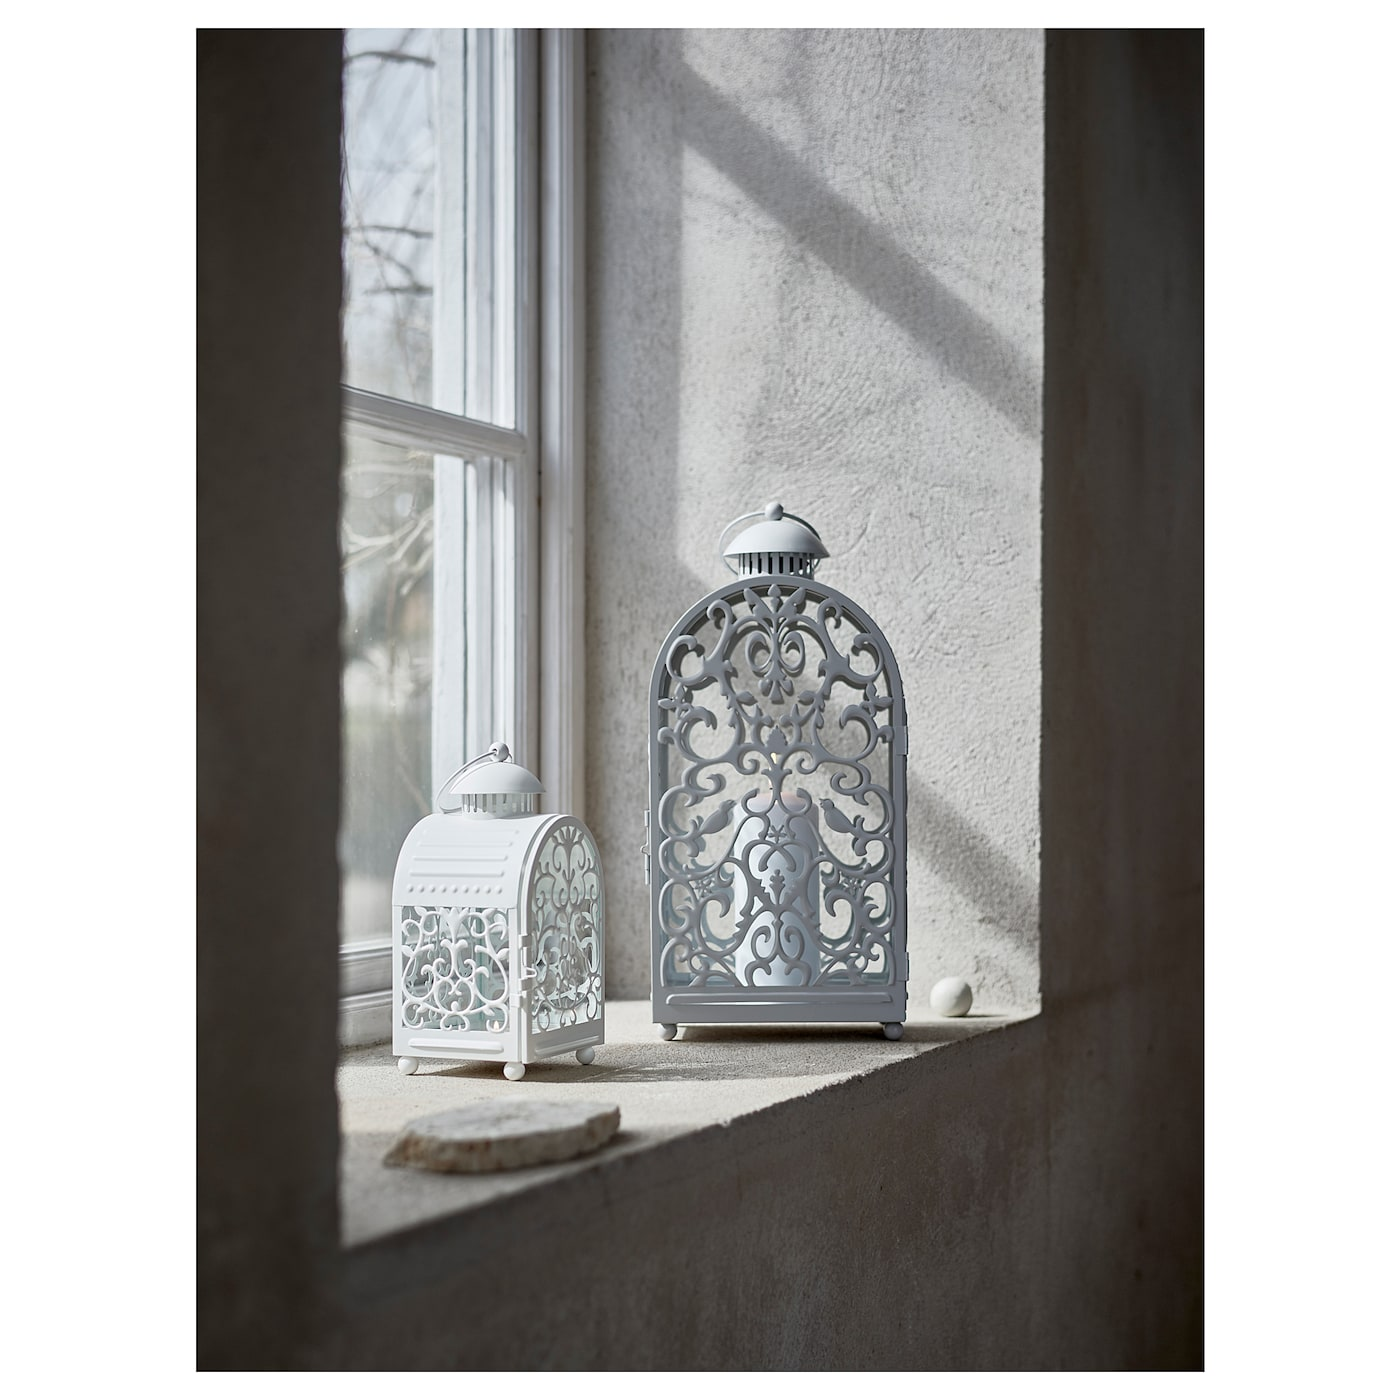 IKEA GOTTGÖRA lantern for block candle Suitable for both indoor and outdoor use.